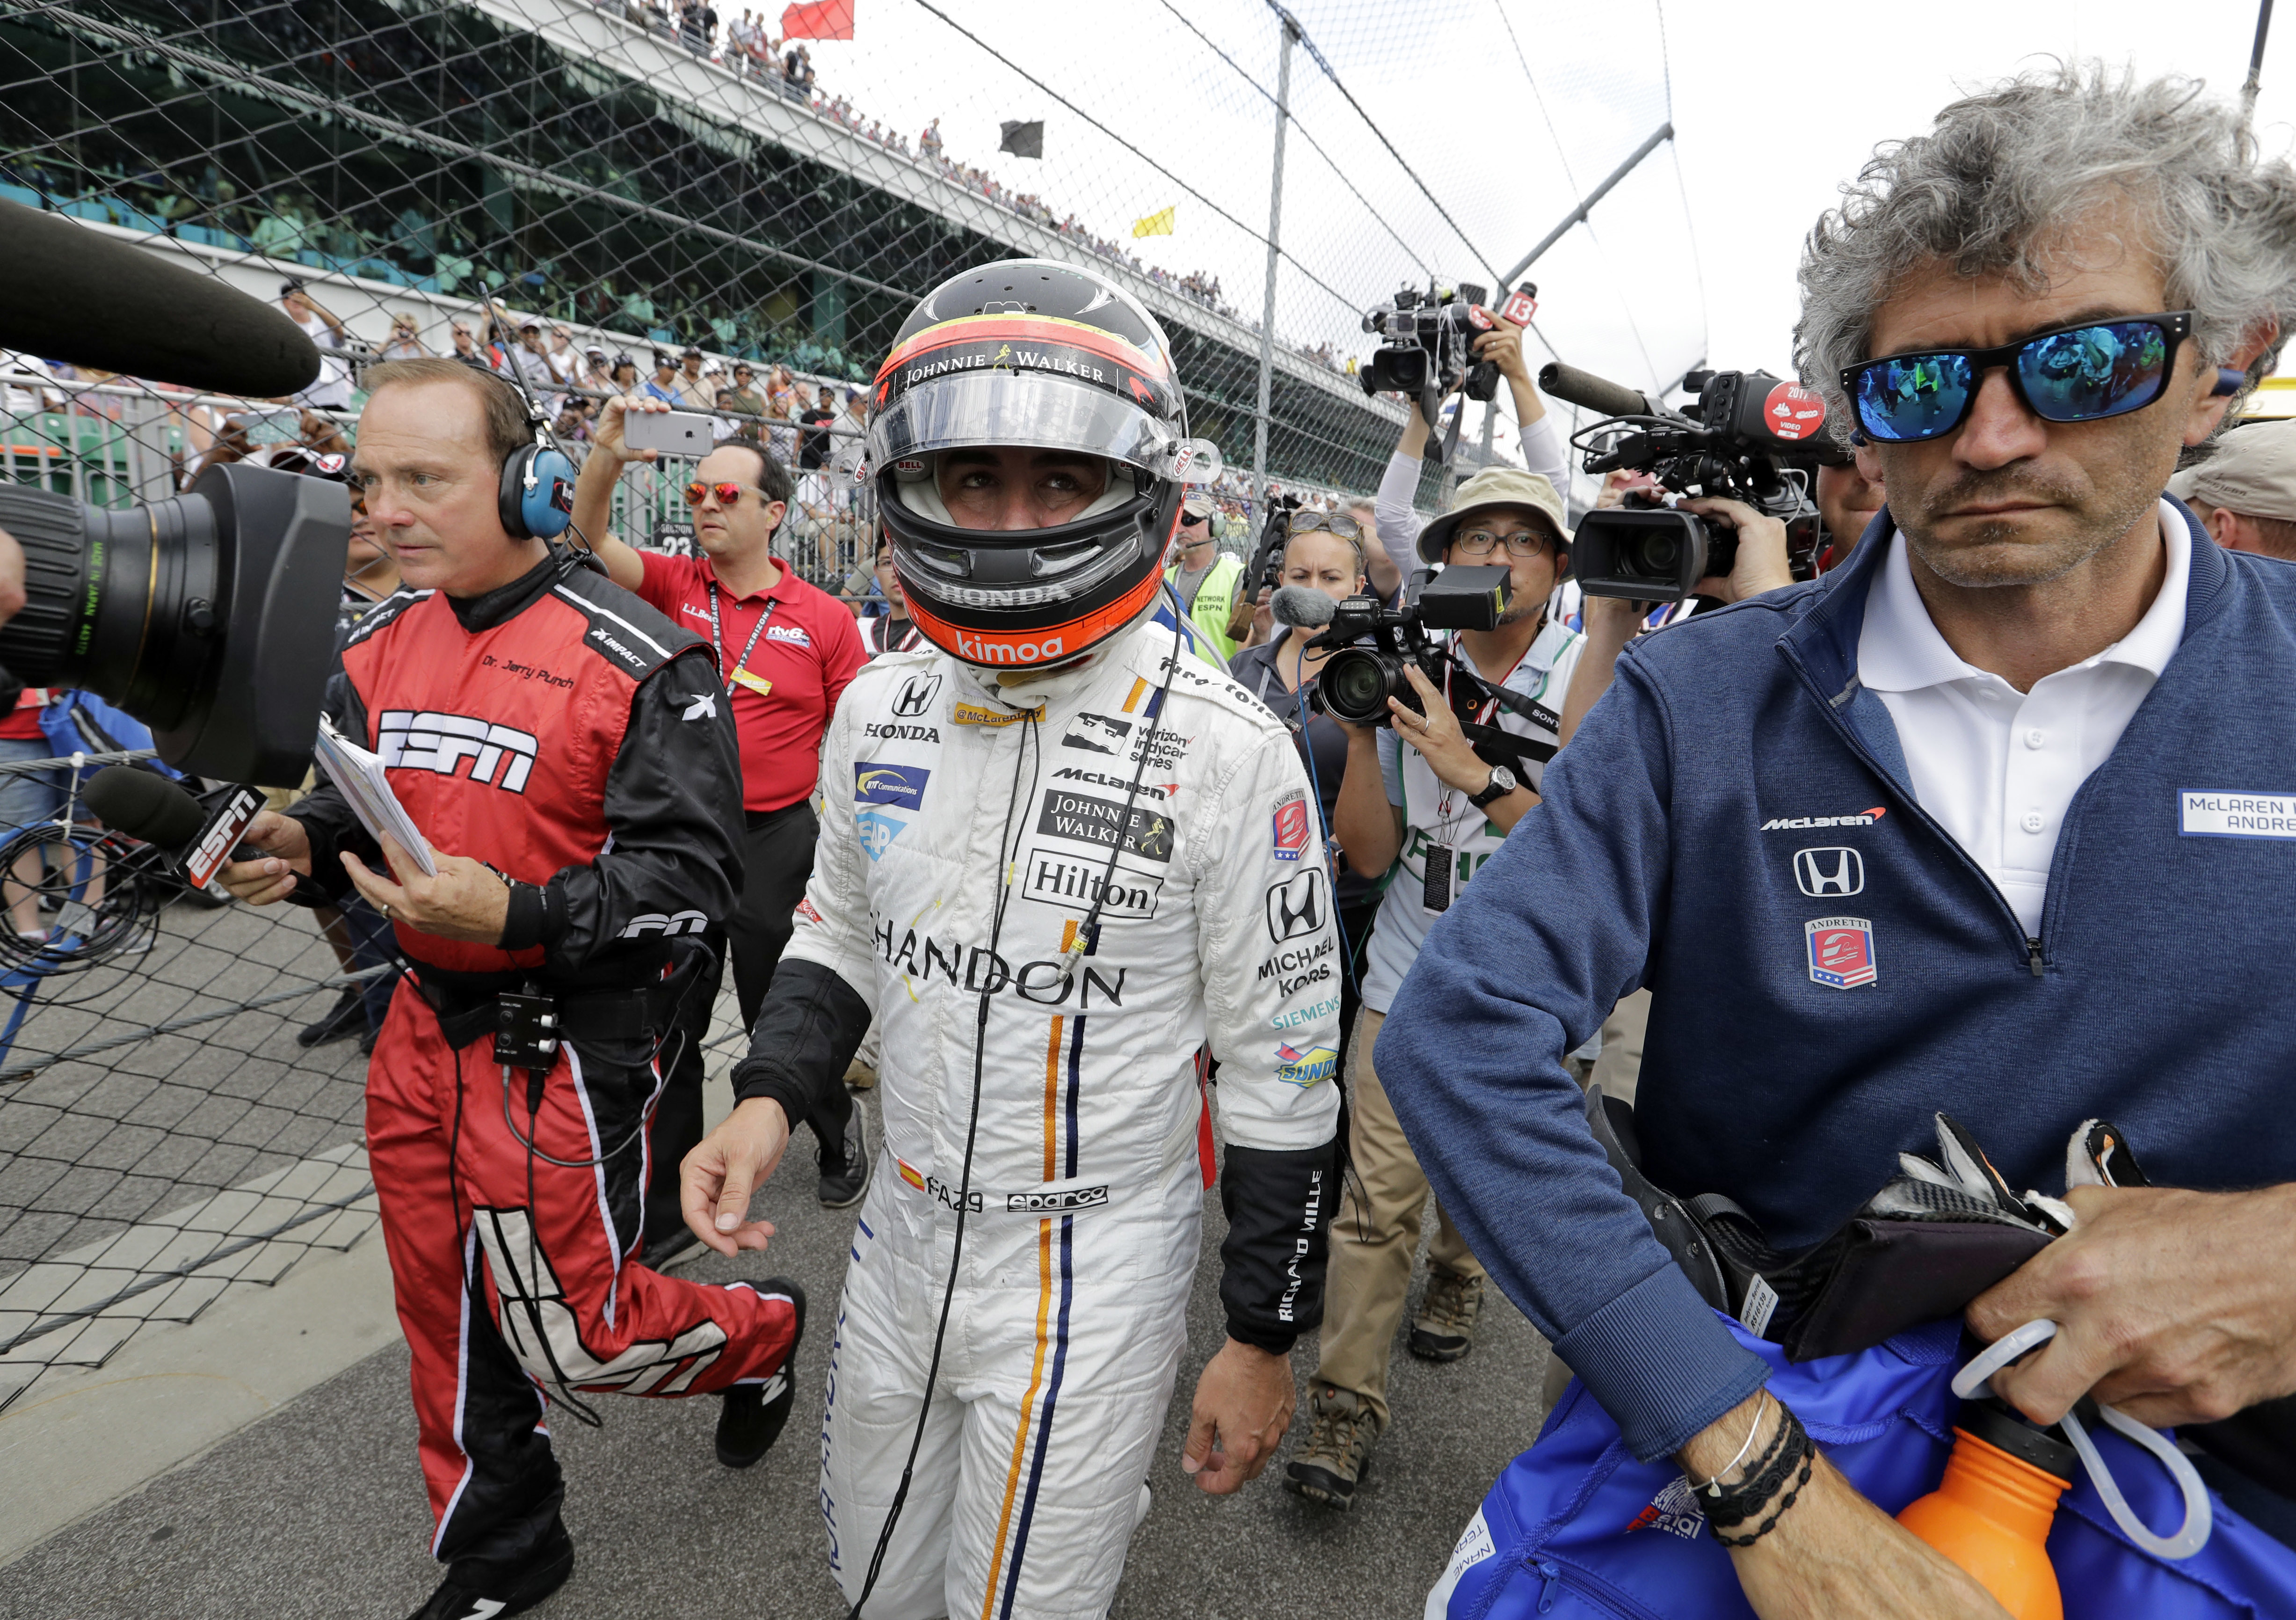 Fernando Alonso abandona la carrera en Indianapolis (AP Photo/Sam Riche)